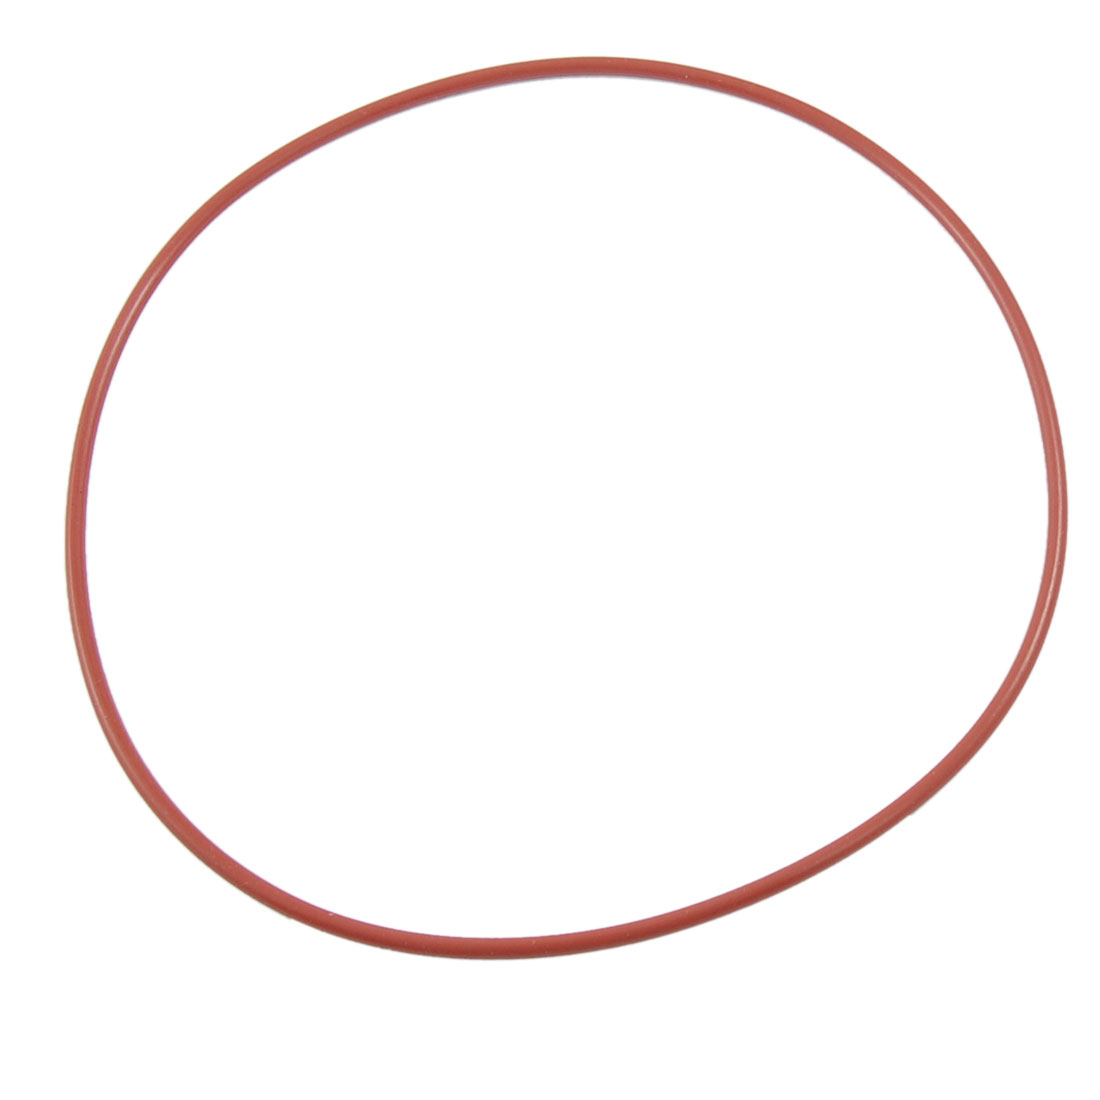 Red Silicone O Ring Oil Seal Gasket Washer Metric 155mm x 3mm